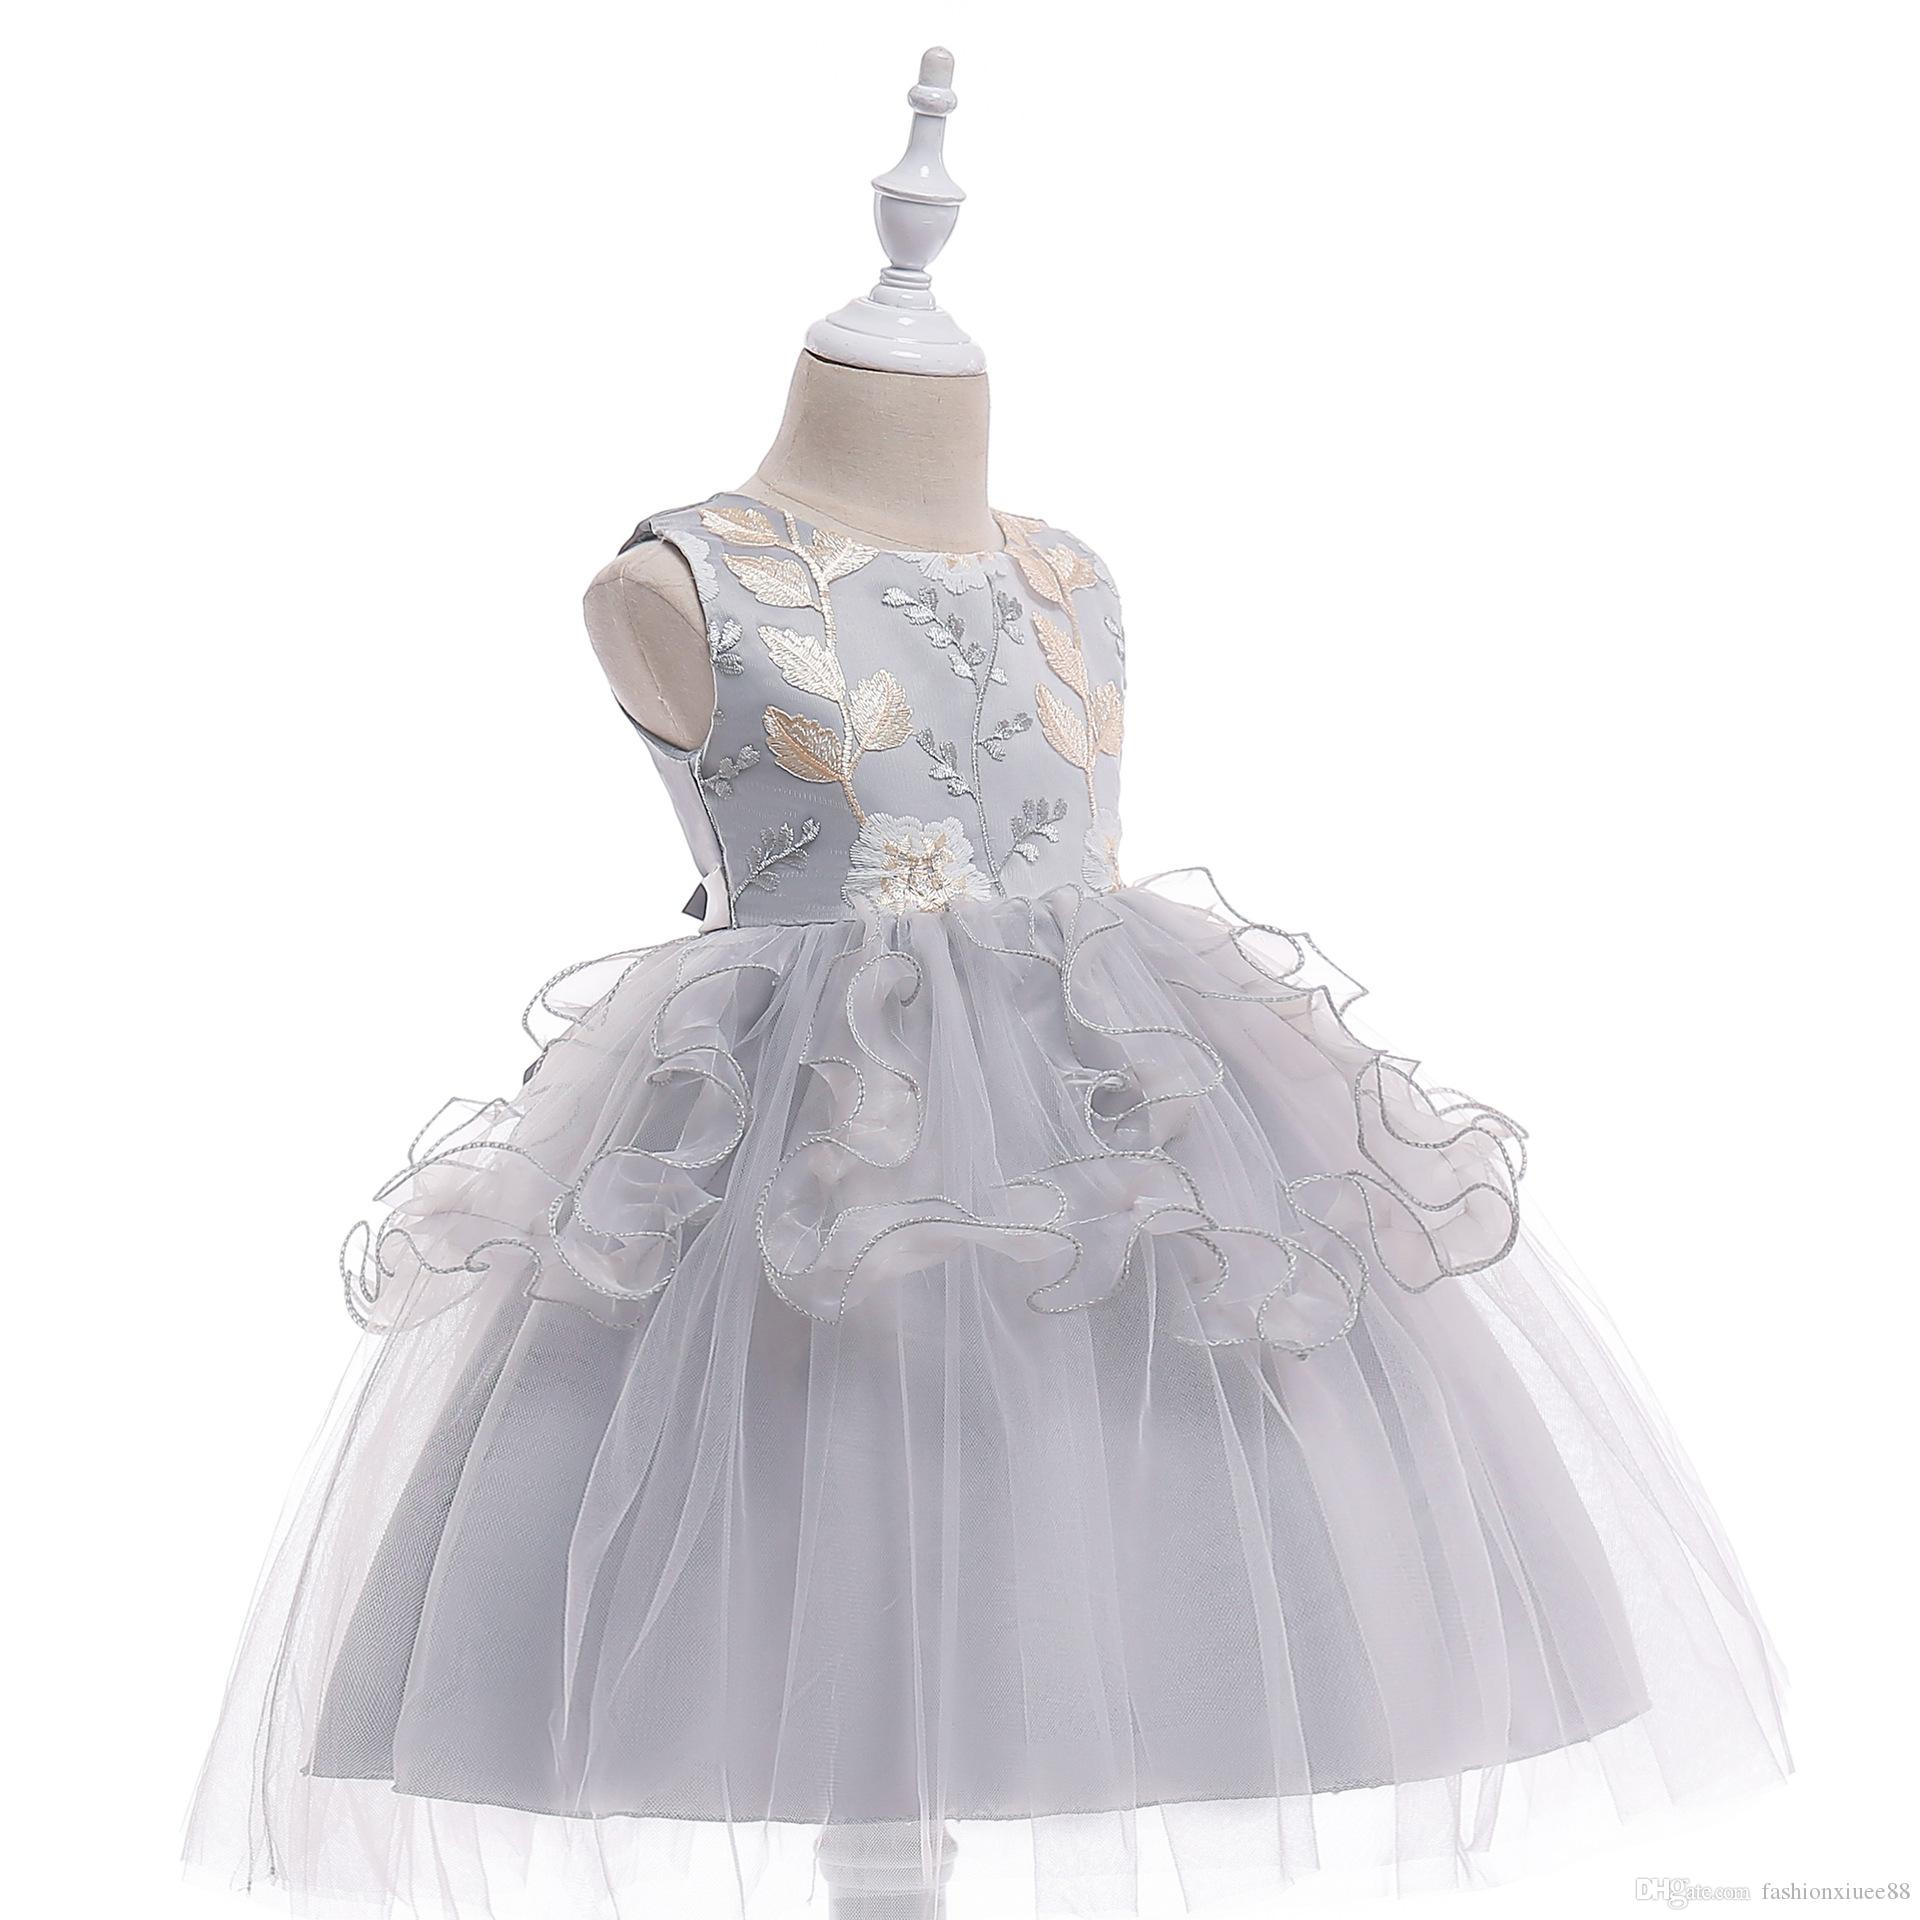 Silver Gray Flower Girls Dresses Butterflies 3D Floral Applique Knee Length Girls Pageant Dresses Baby Girl First Birthday